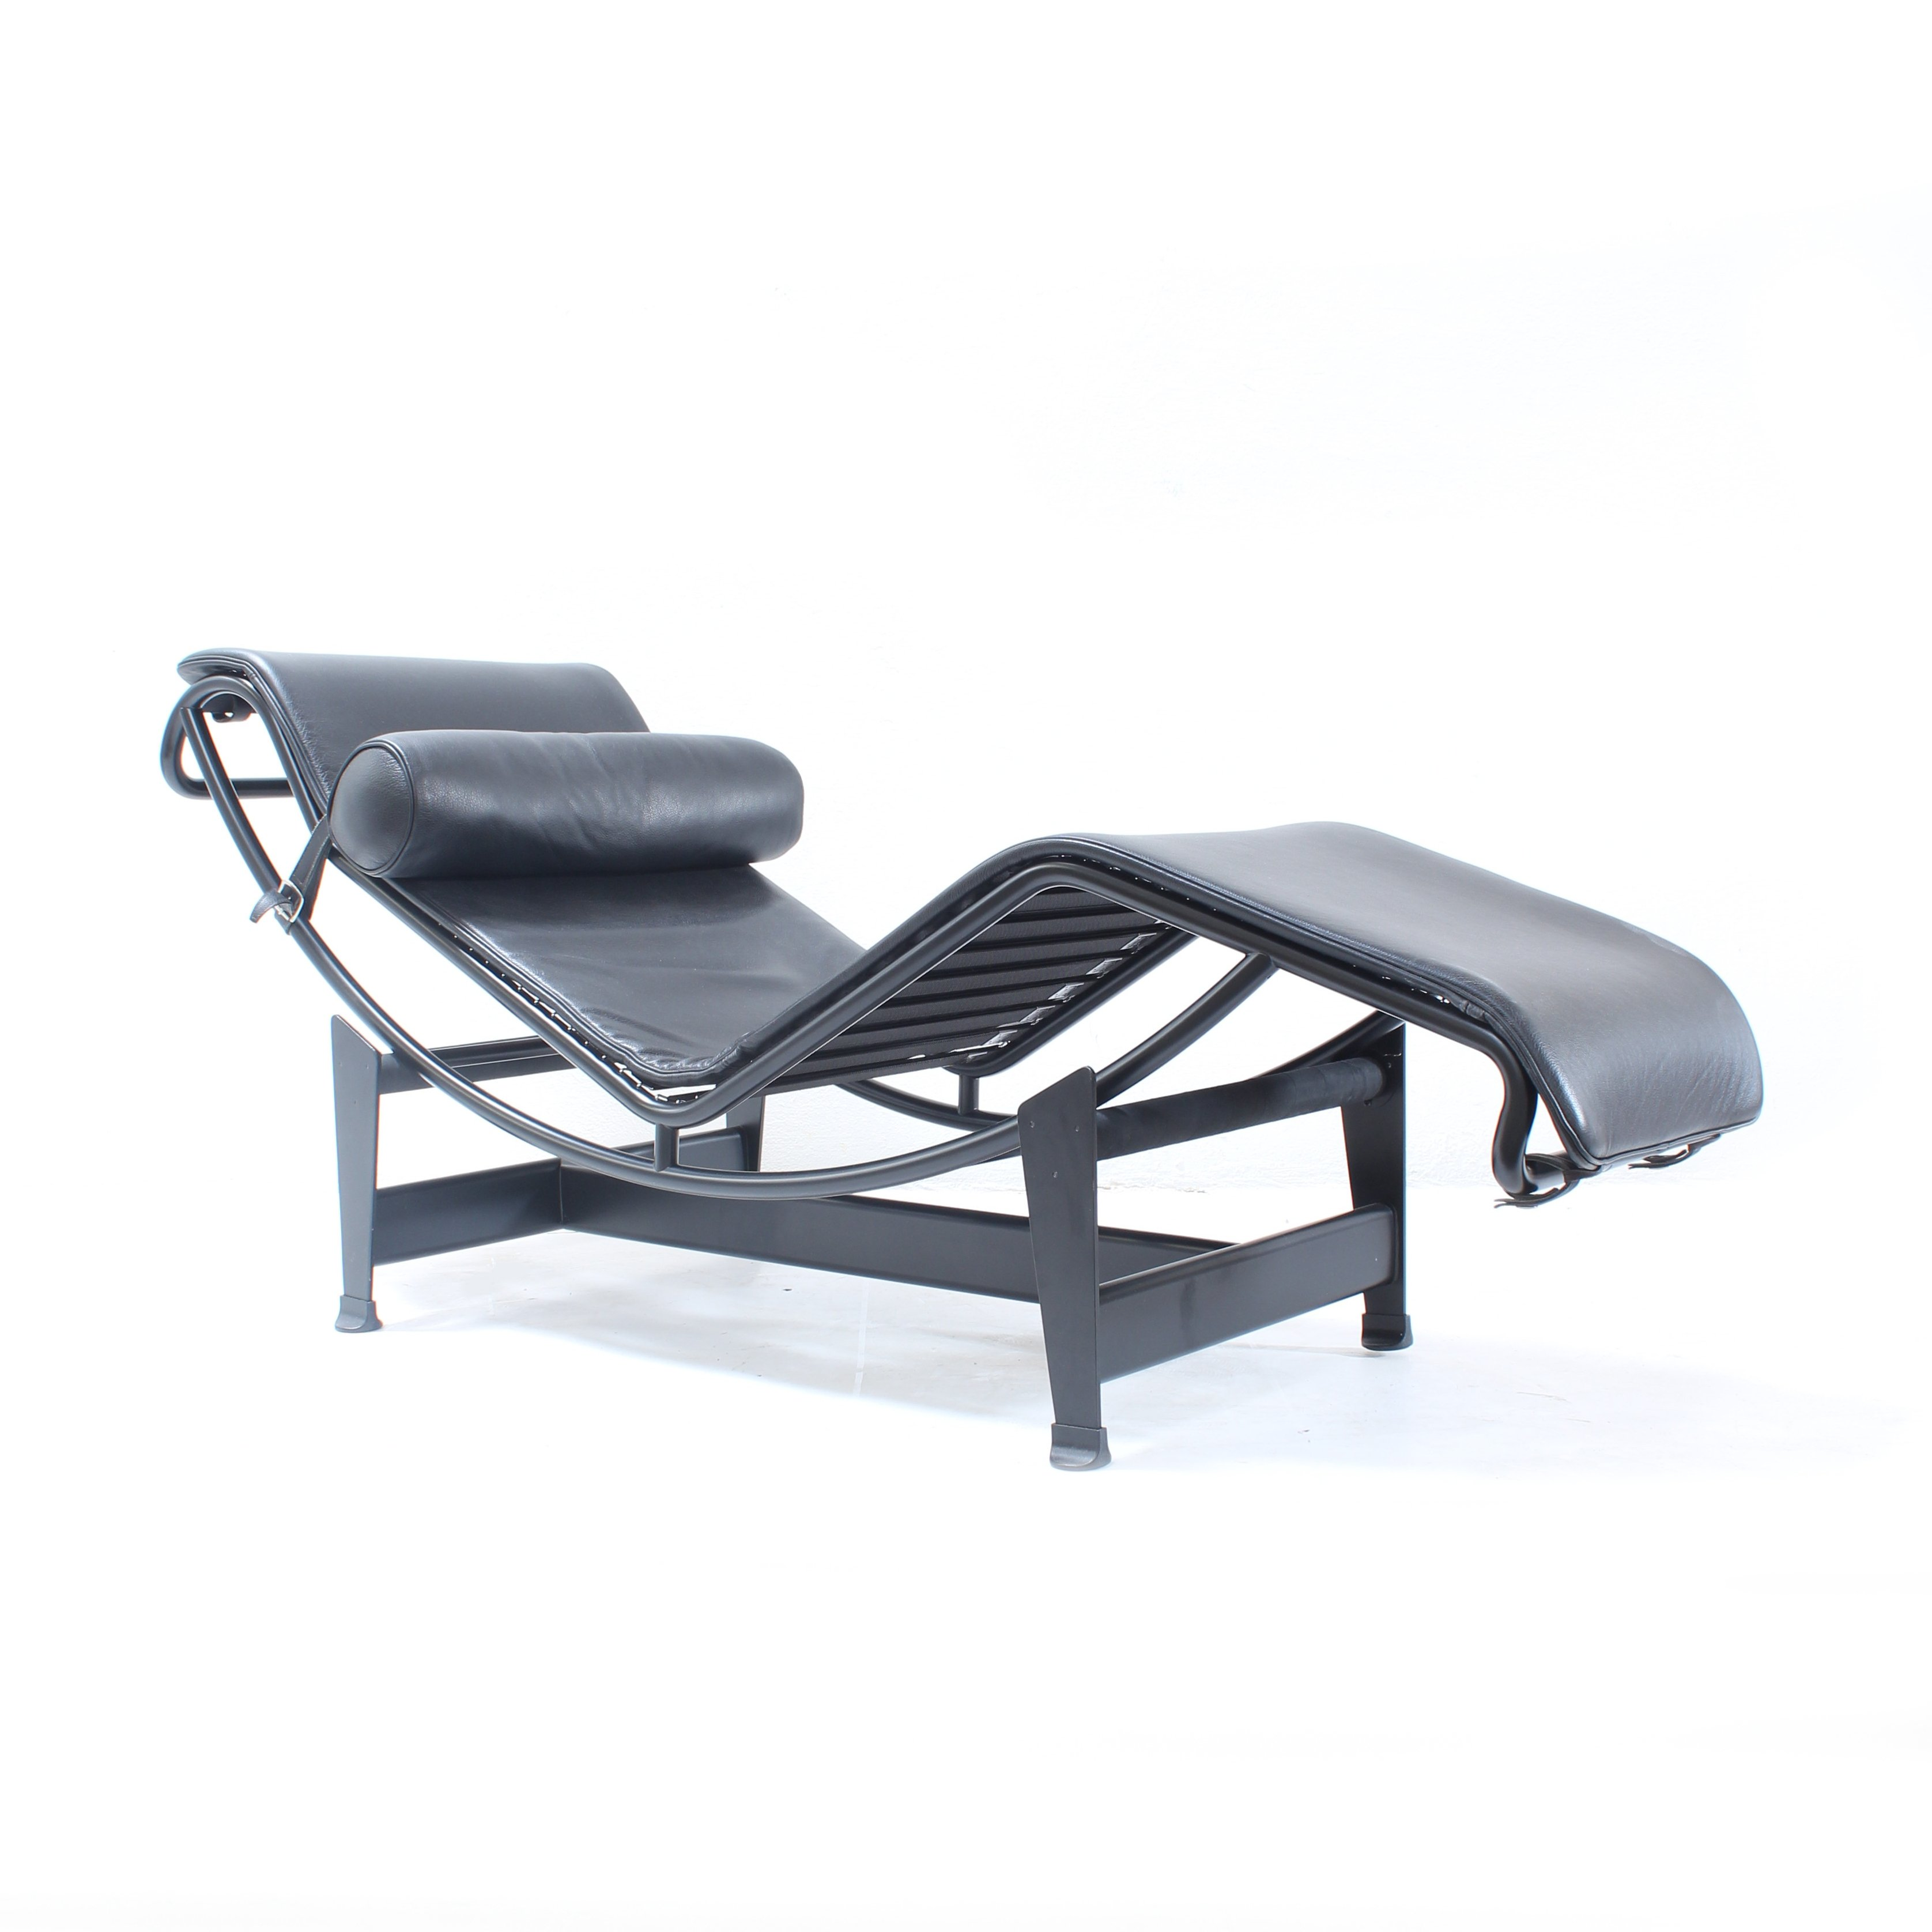 lc4 chaise longue rare full black edition lounge chair by le corbusier for cassina 1920s 61682. Black Bedroom Furniture Sets. Home Design Ideas